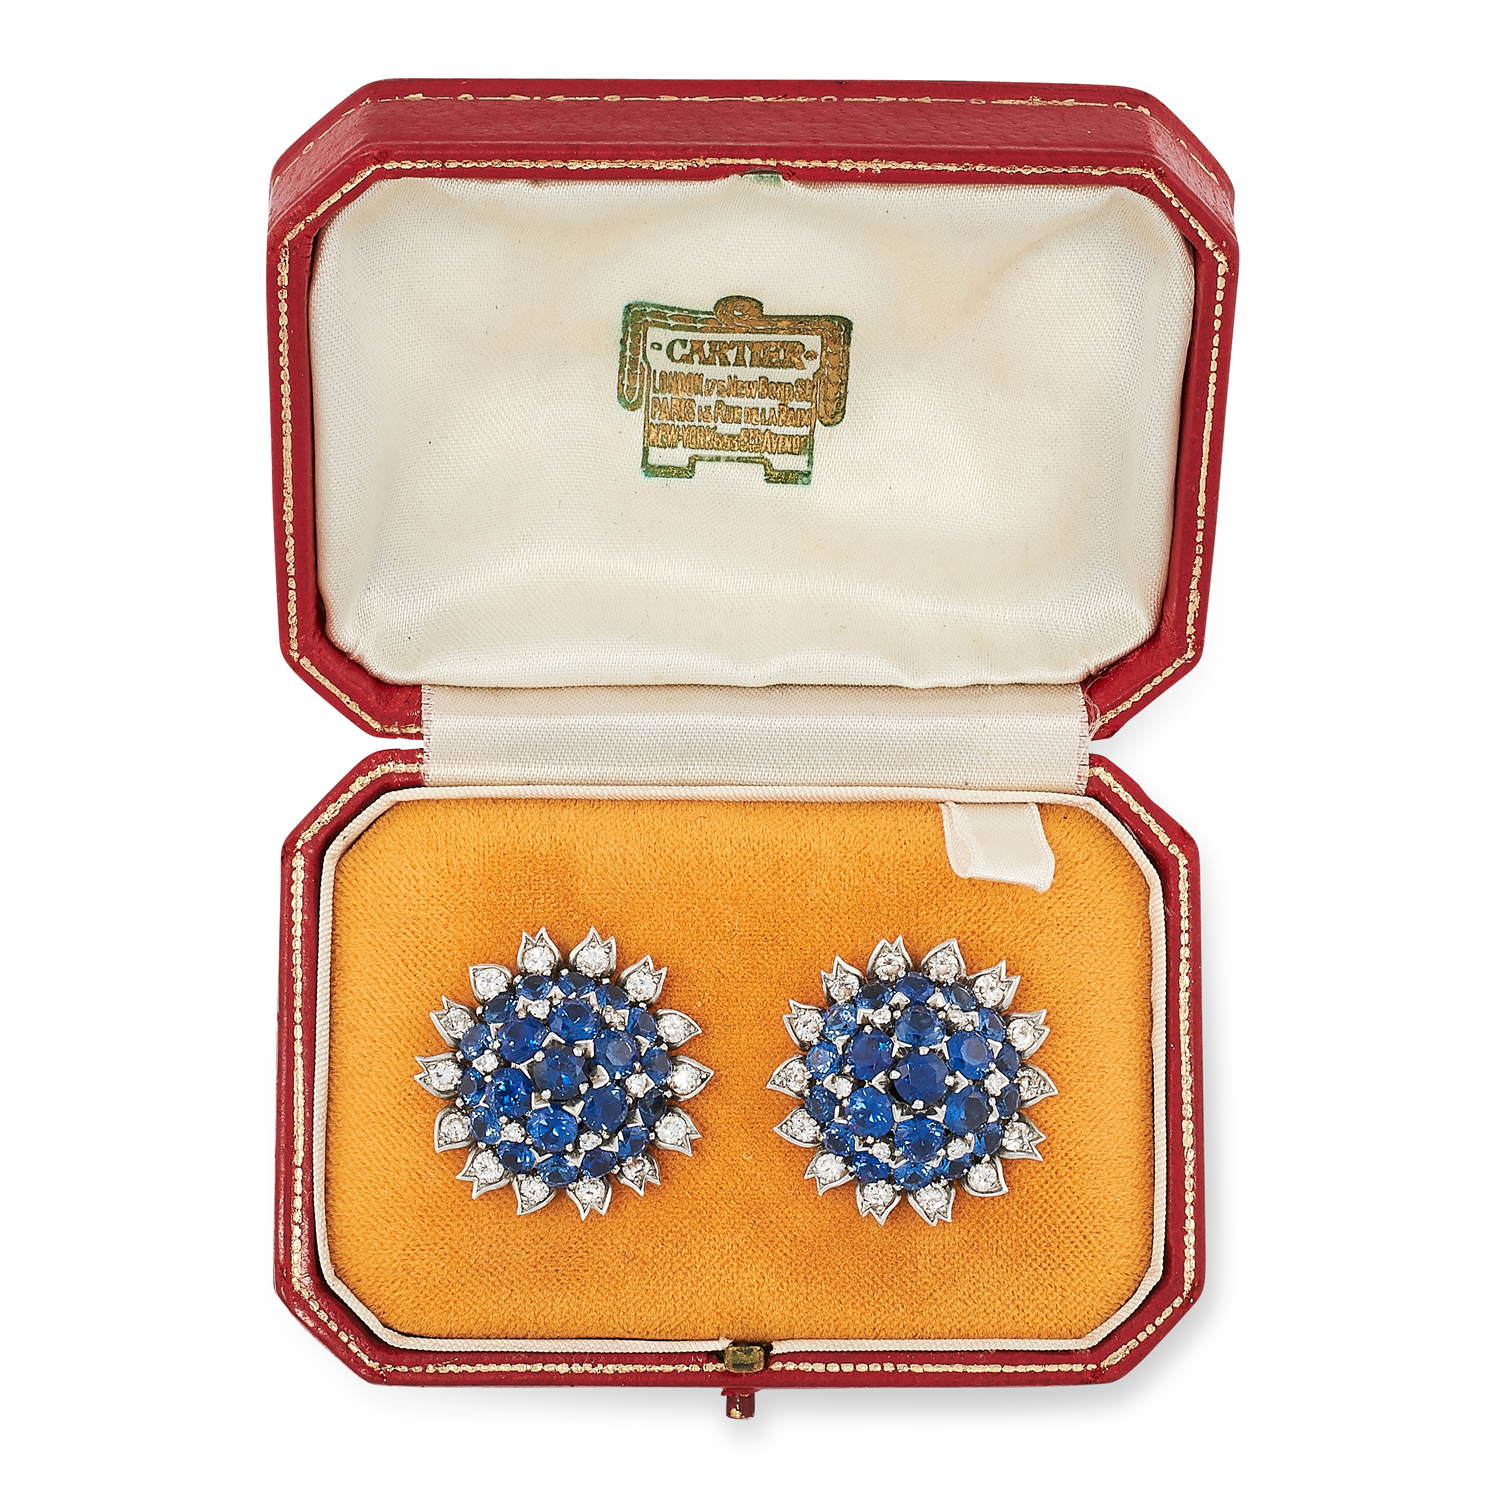 A PAIR OF VINTAGE SAPPHIRE AND DIAMOND EARRINGS, CARTIER CIRCA 1960 in 18ct white gold, each set - Image 2 of 2